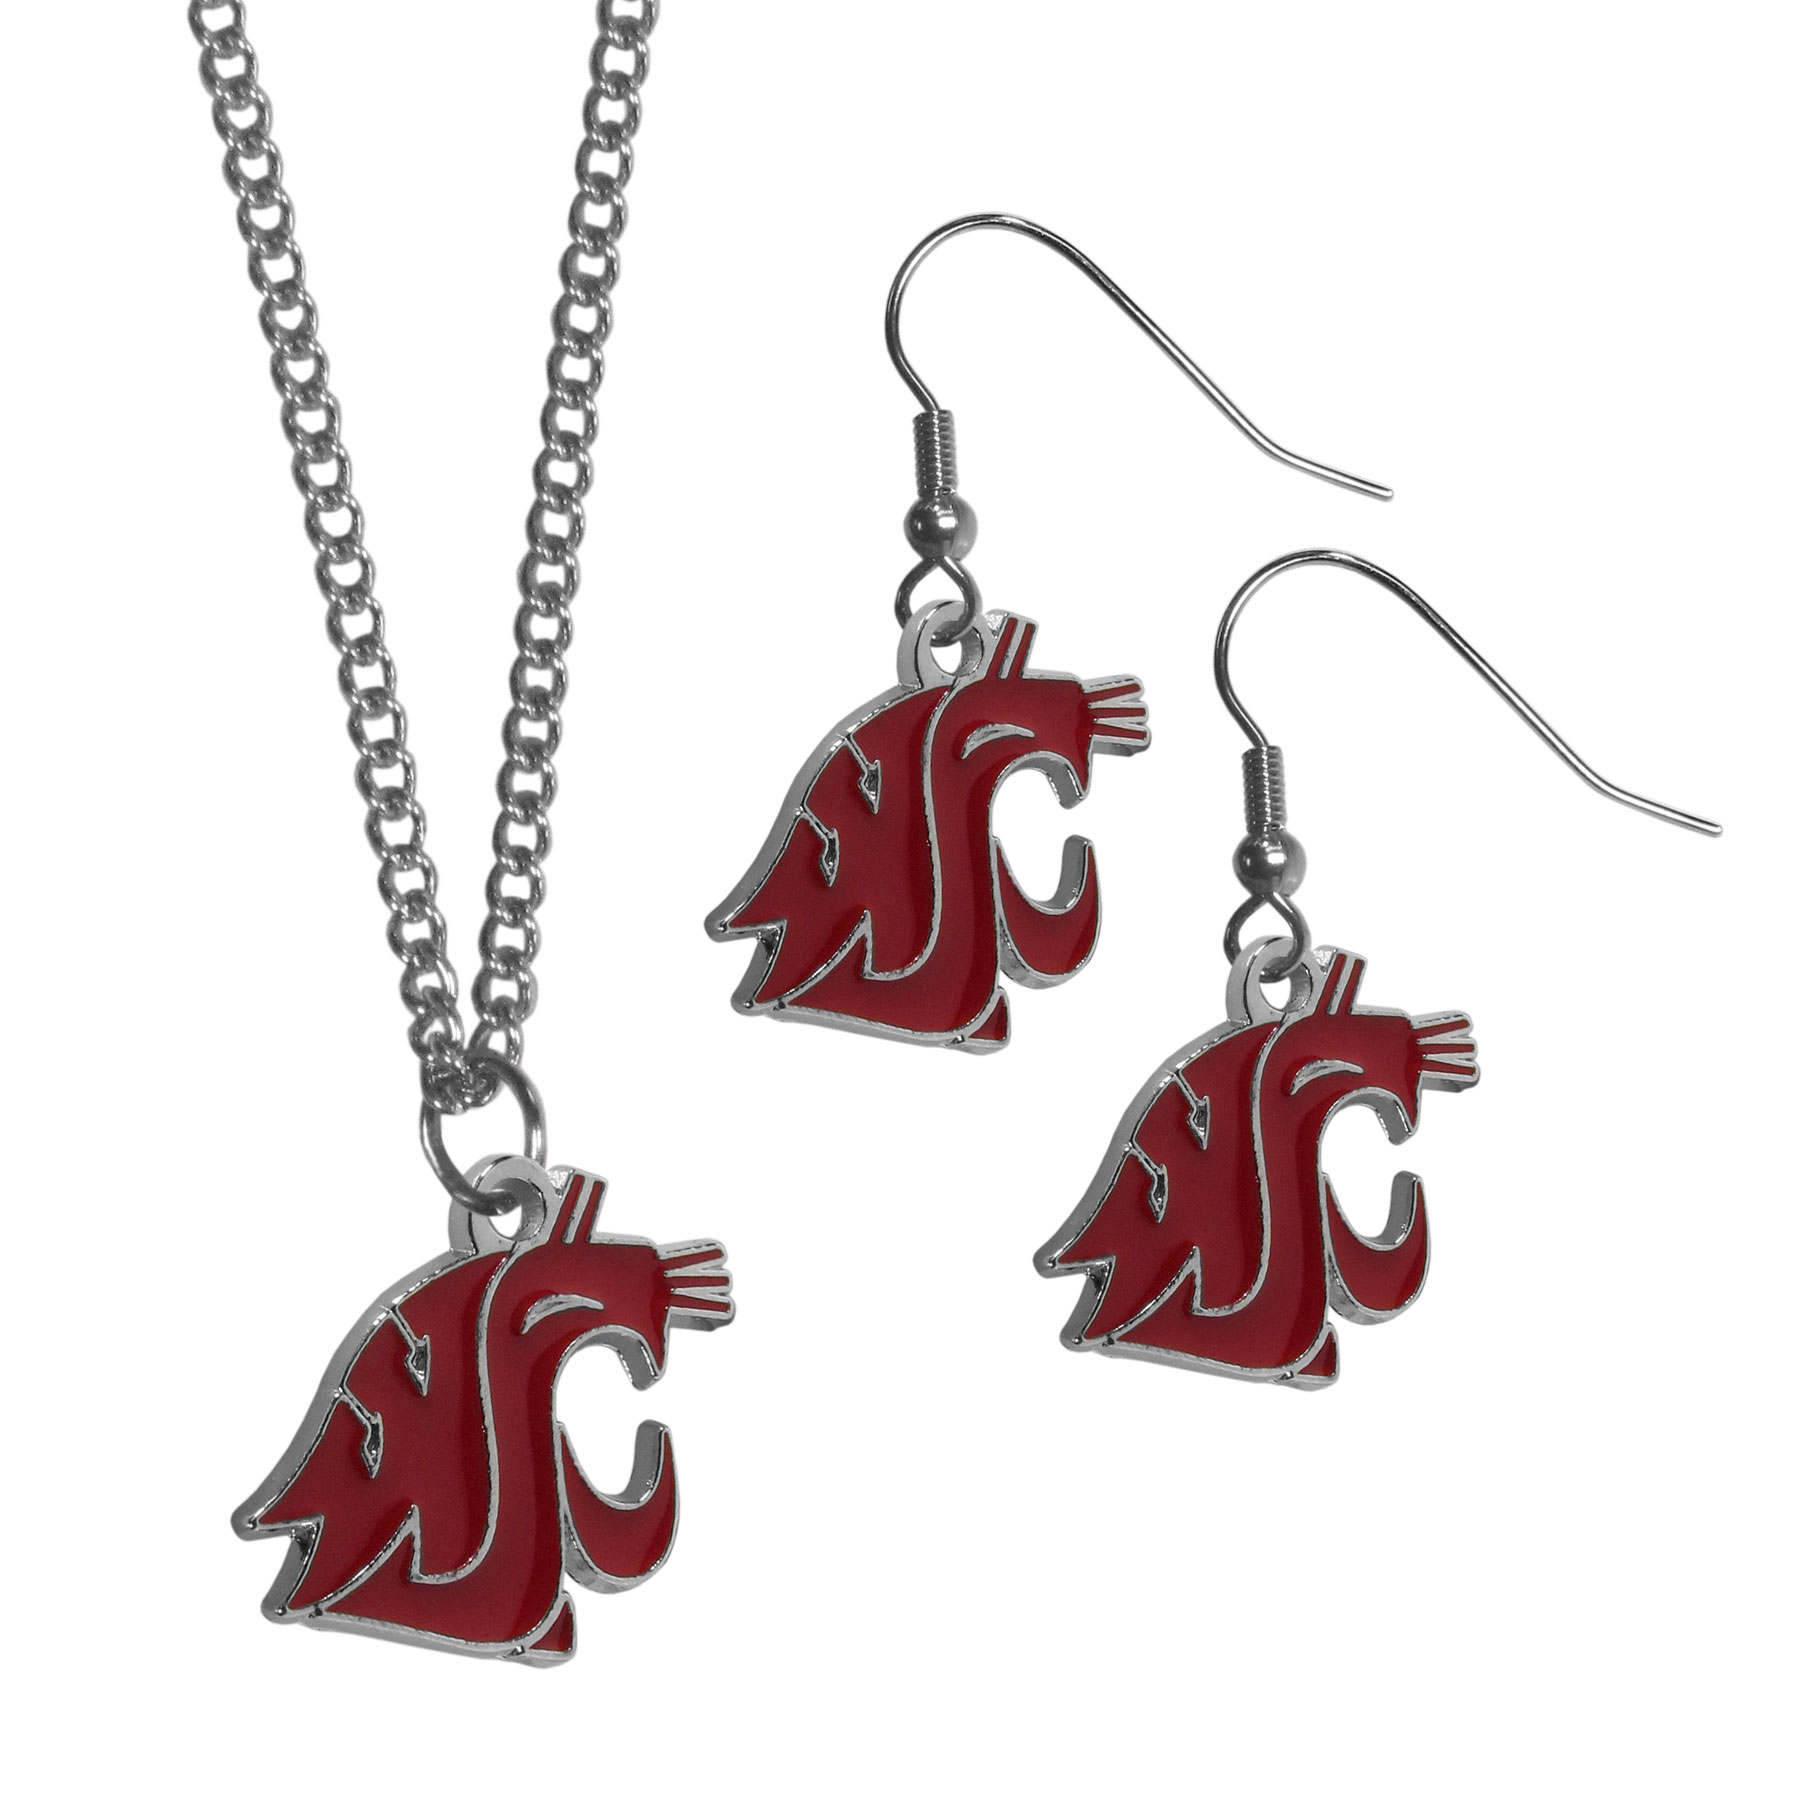 Washington St. Cougars Dangle Earrings and Chain Necklace Set - This classic jewelry set contains are most popular Washington St. Cougars dangle earrings and 22 inch chain necklace. The trendy, dangle earrings are lightweight and feature a fully cast metal team charm with enameled team colors. The matching necklace completes this fashion forward combo and is a spirited set that is perfect for game day but nice enough for everyday.